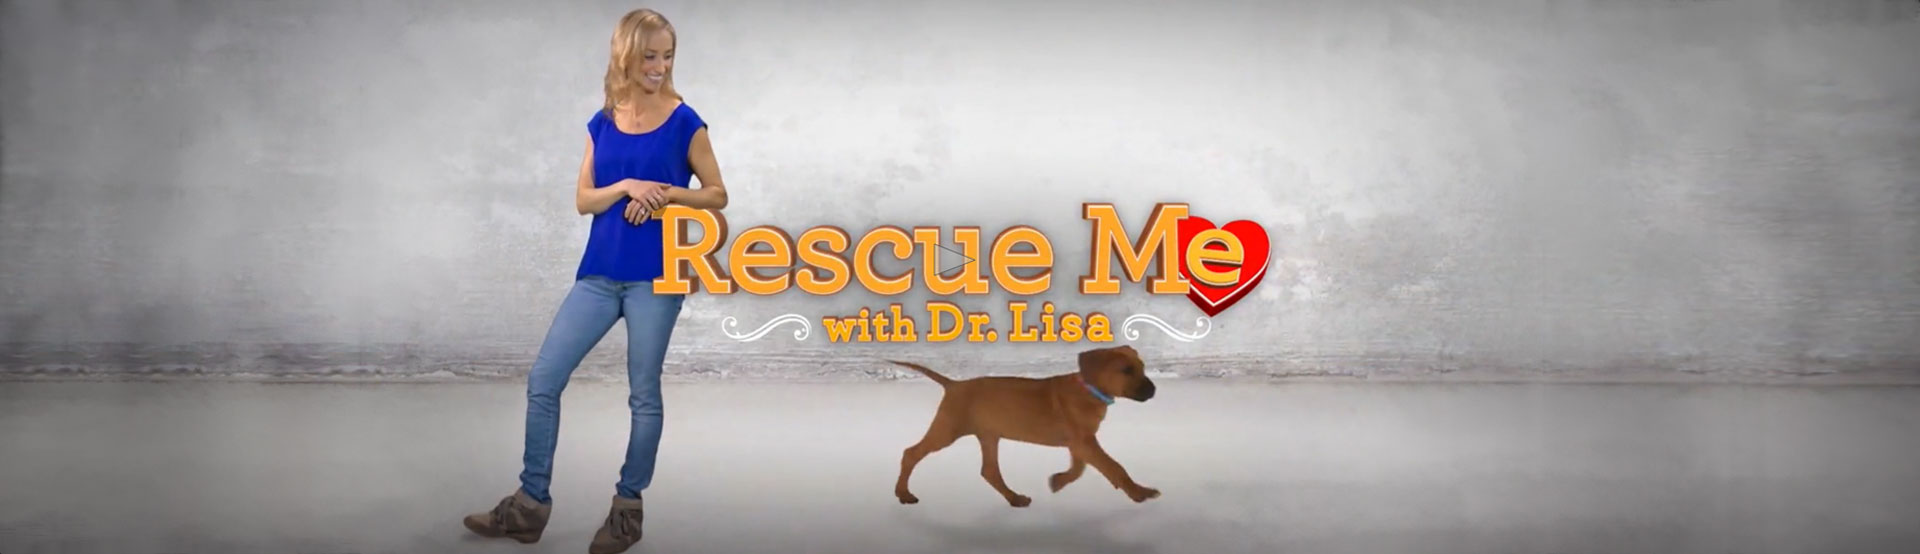 Rescue Me With Dr. Lisa